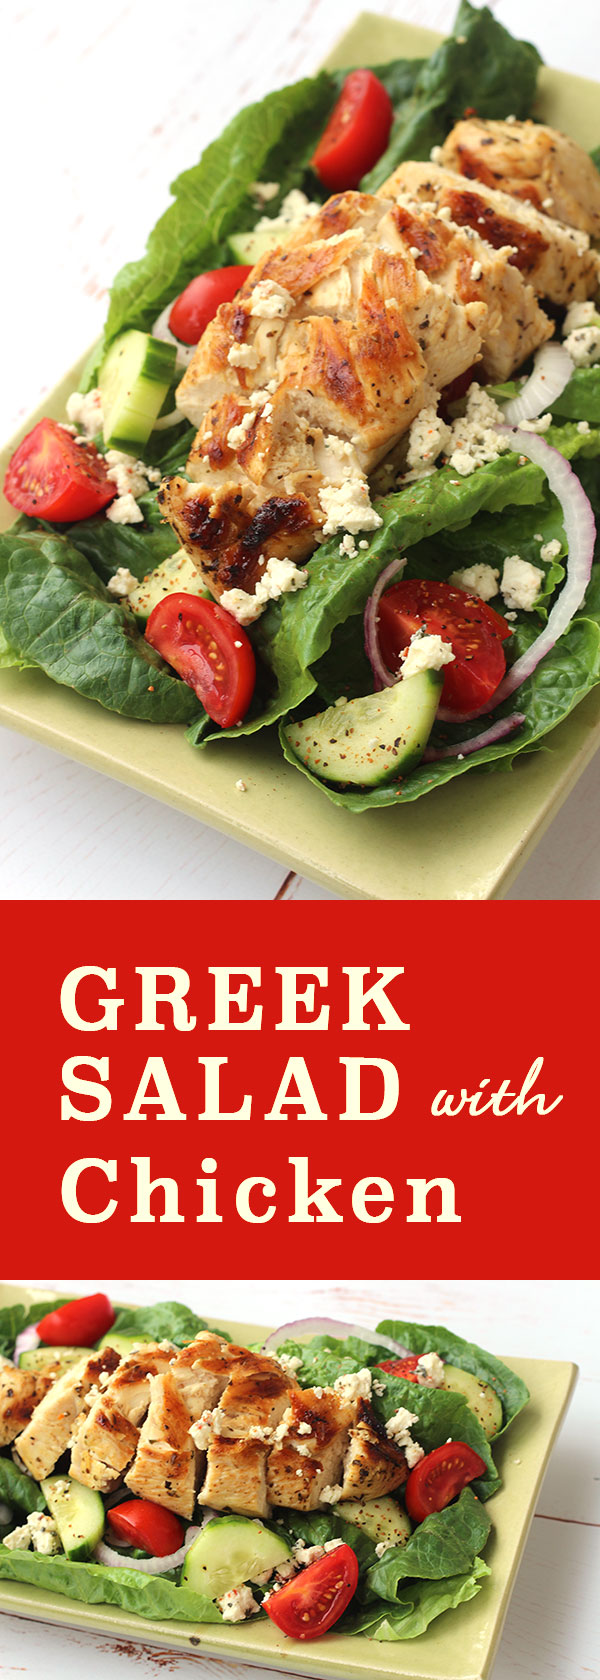 Greek Salad with Chicken | diabeticfoodie.com